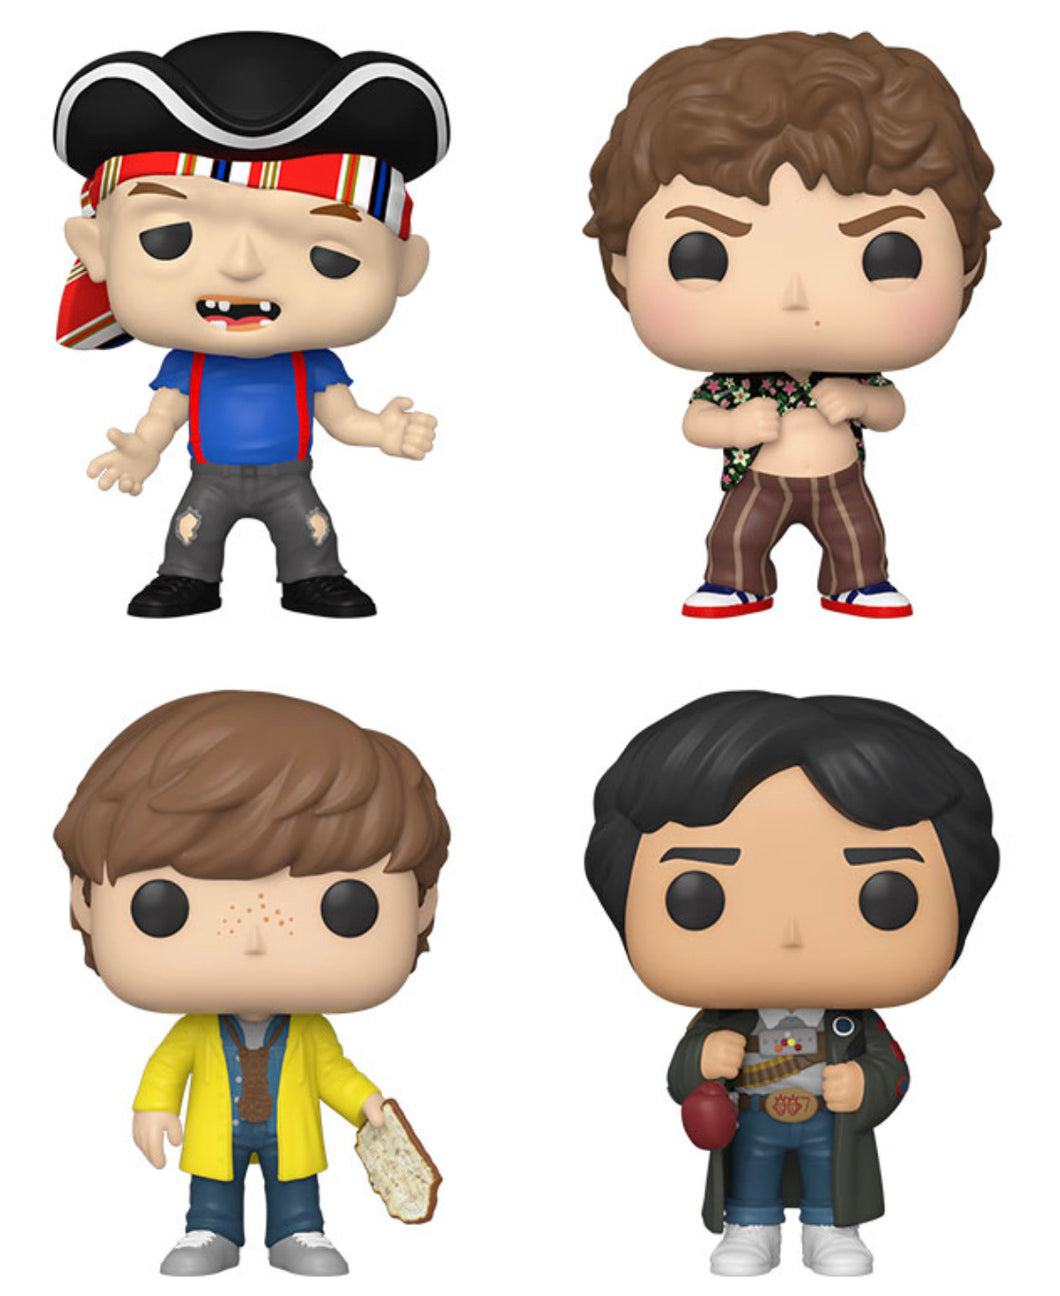 [PRE-ORDER] Funko Pop! The Goonies